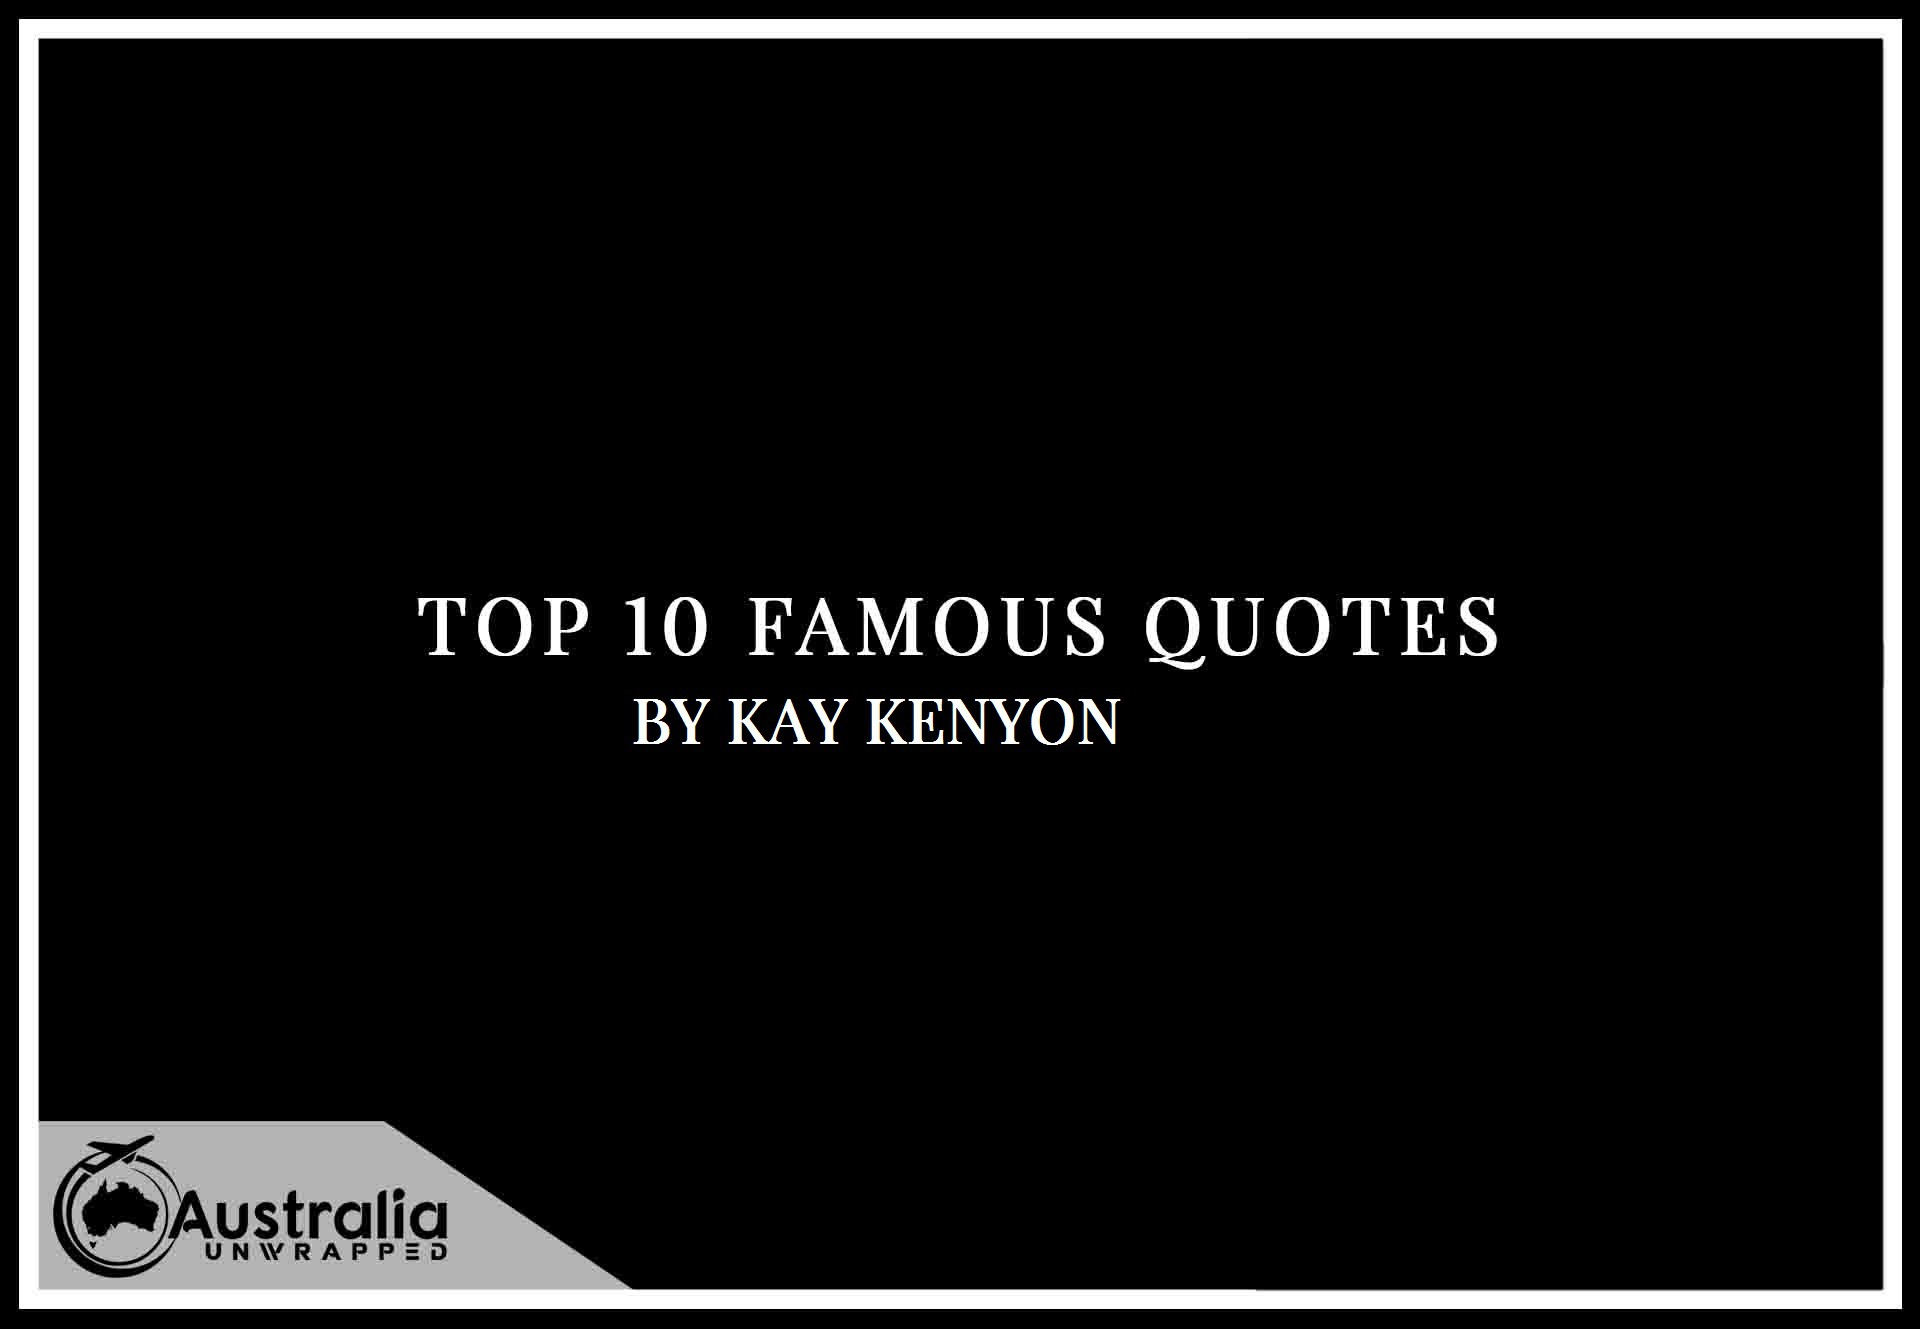 Kay Kenyon's Top 10 Popular and Famous Quotes